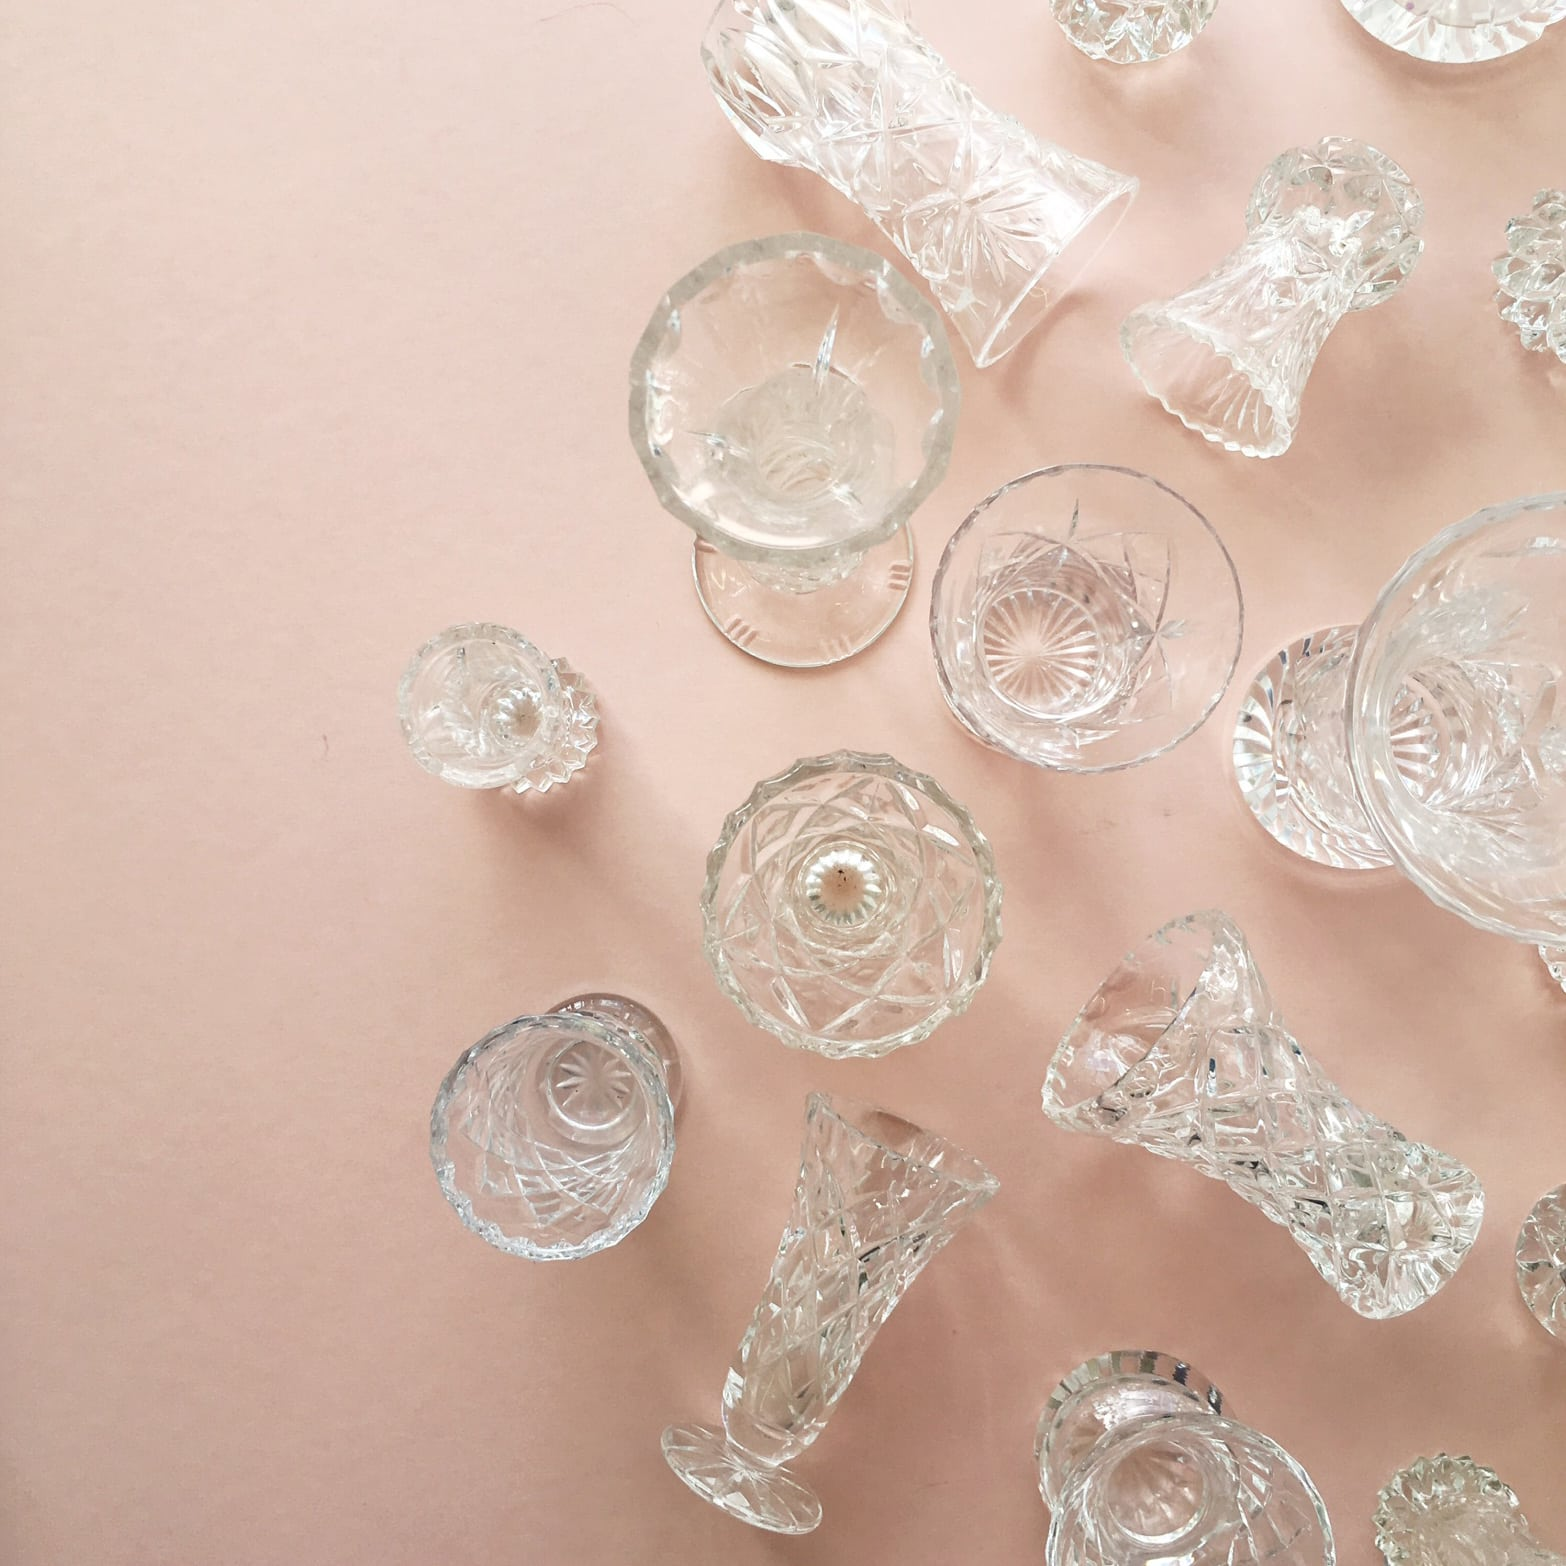 Cut glass wedding props and vases from London based wedding planners